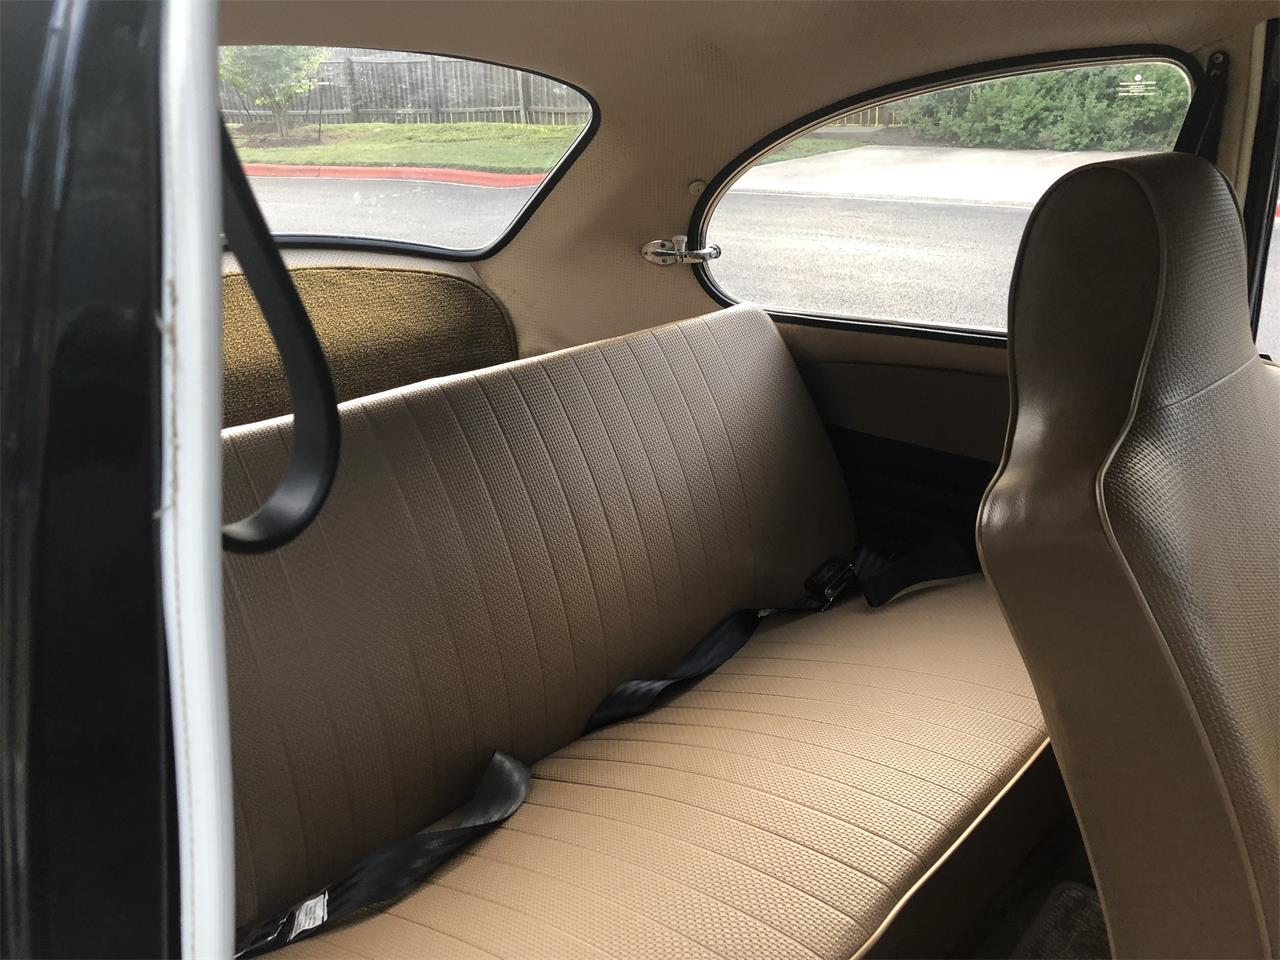 Large Picture of Classic 1972 Volkswagen Beetle located in Austin Texas - $13,500.00 Offered by a Private Seller - QOBX